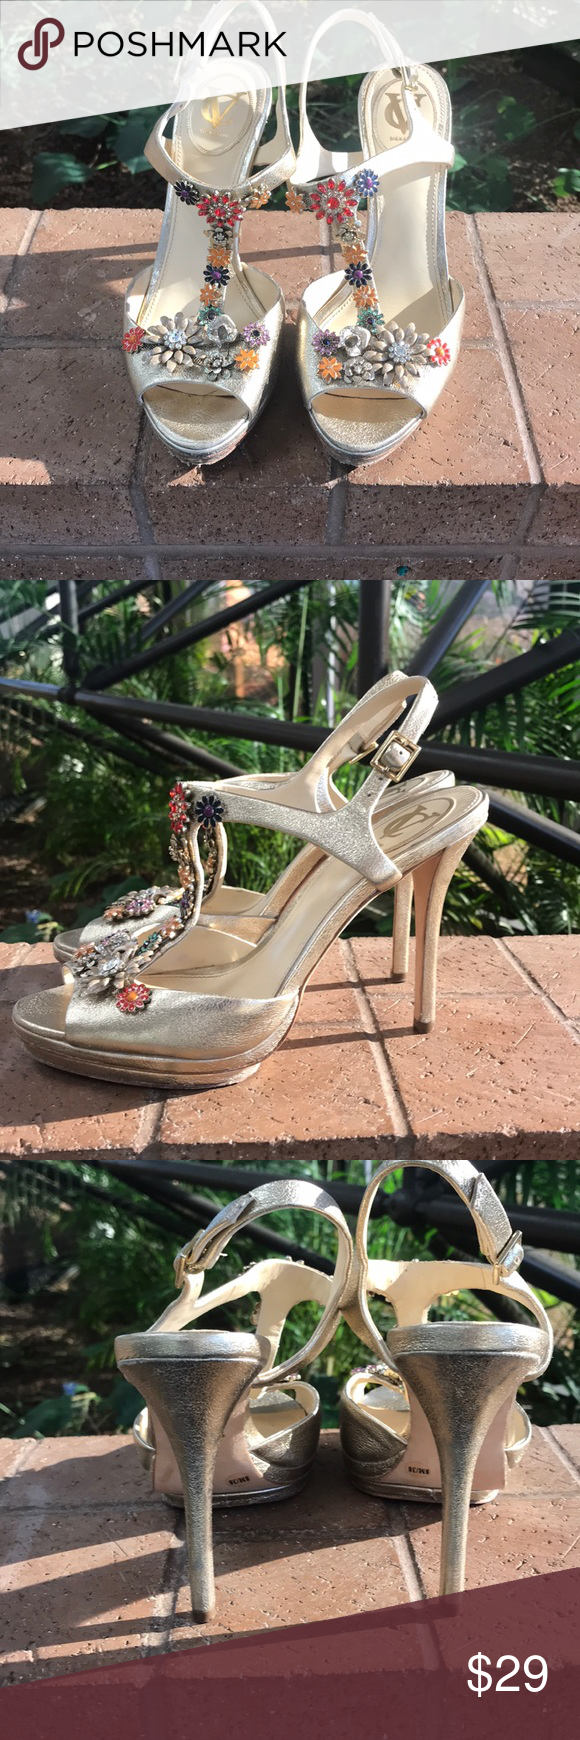 94f1de848bd Vince Camuto Signature Gold Heel Size 8 Jeweled Vince Camuto Signature Gold  Heel Size 8 Jeweled Amina Washed Metallic. Shoes do have some scuffs on the  heel ...